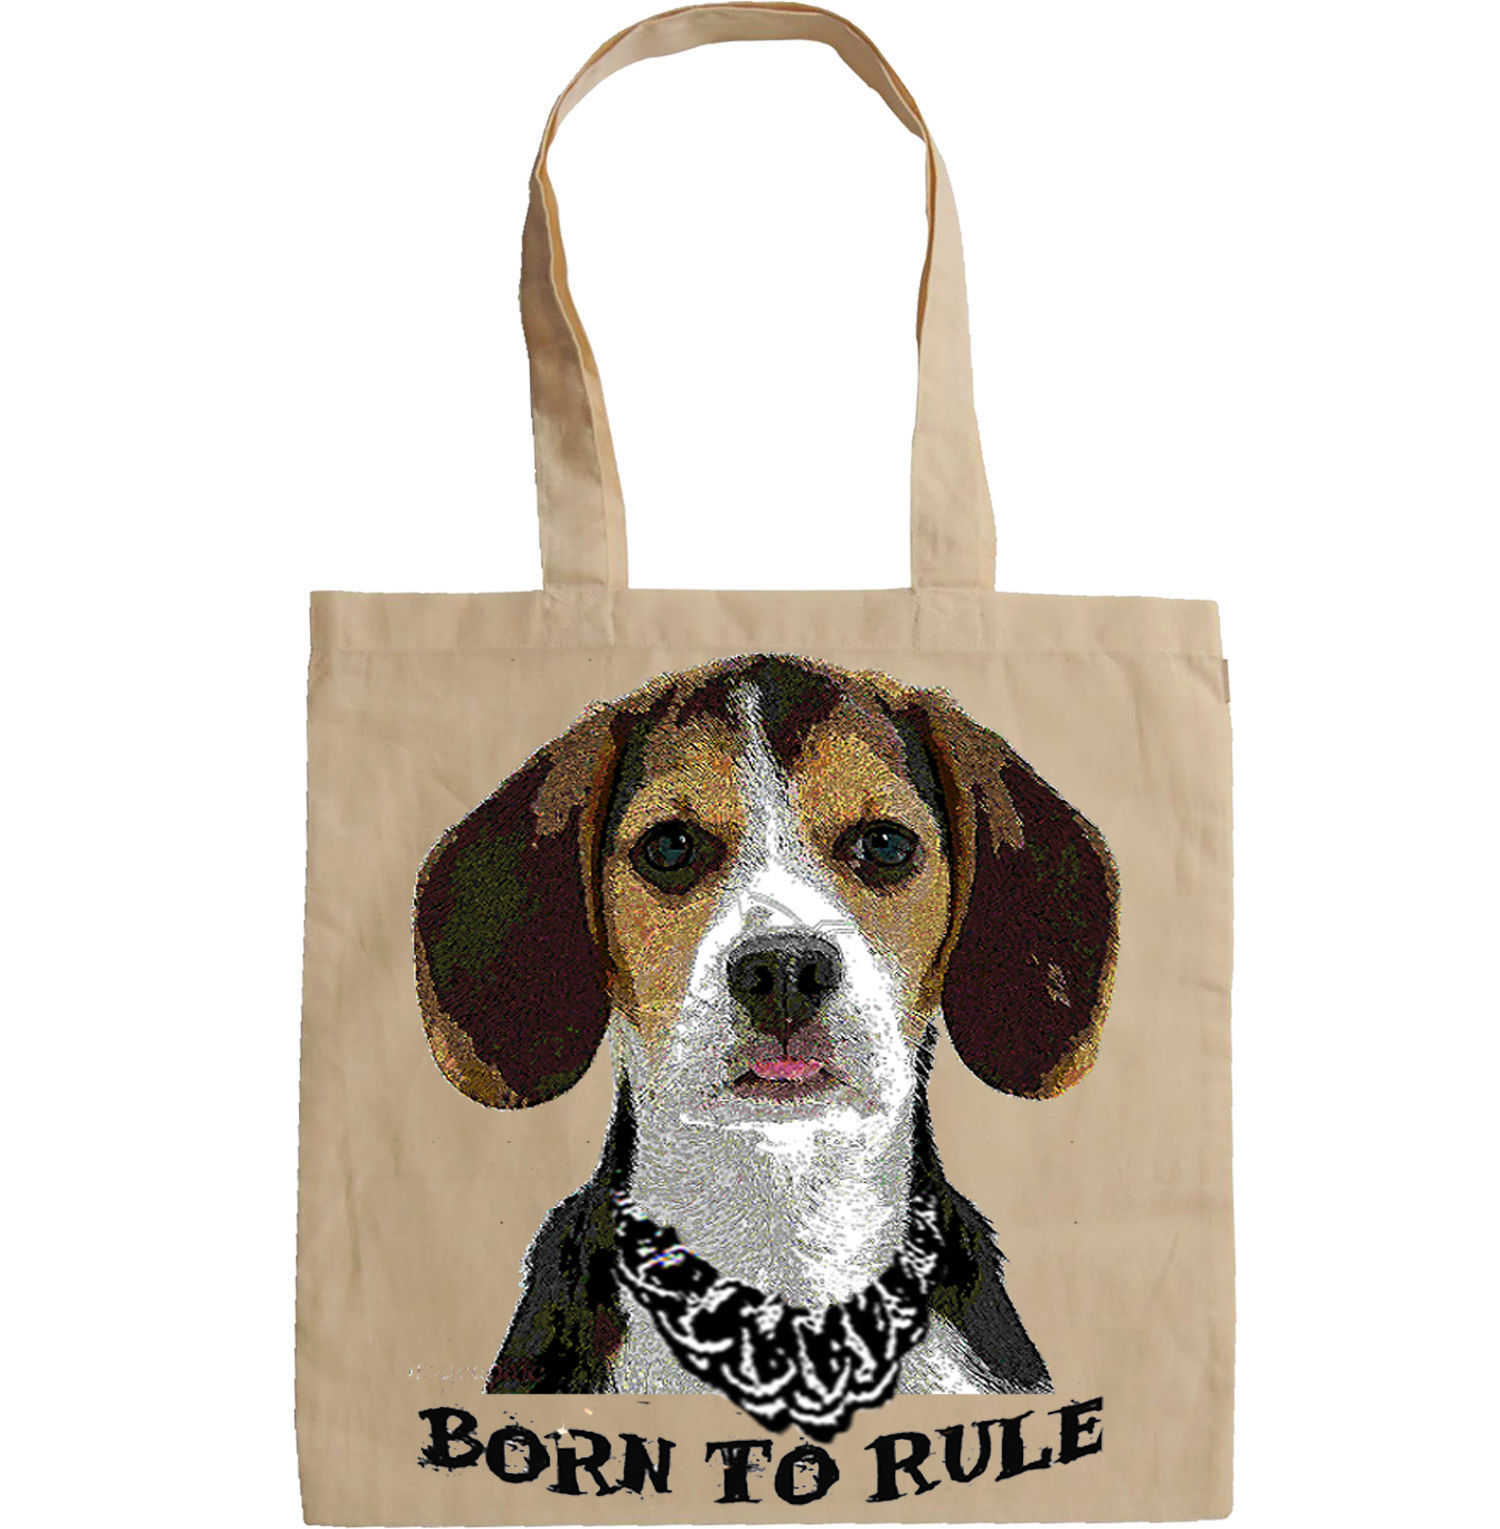 BEAGLE PUPPY BORN TO RULE  - NEW AMAZING GRAPHIC HAND BAG/TOTE BAG